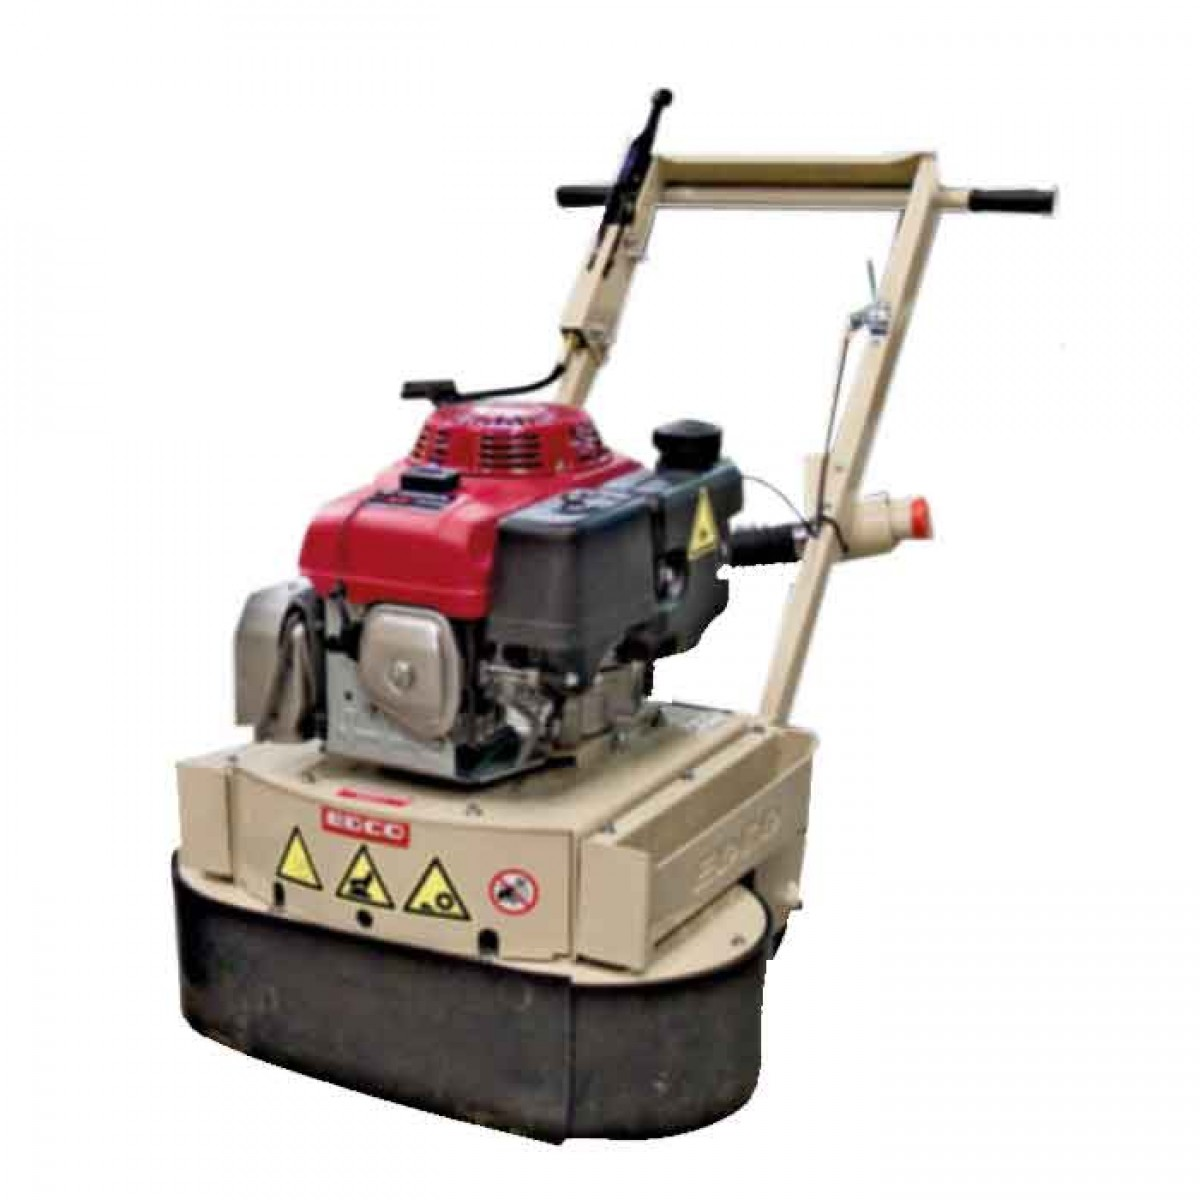 EDCO 2GC-NG-11HP Dual-Disc Wedgeless Floor Grinder 59300